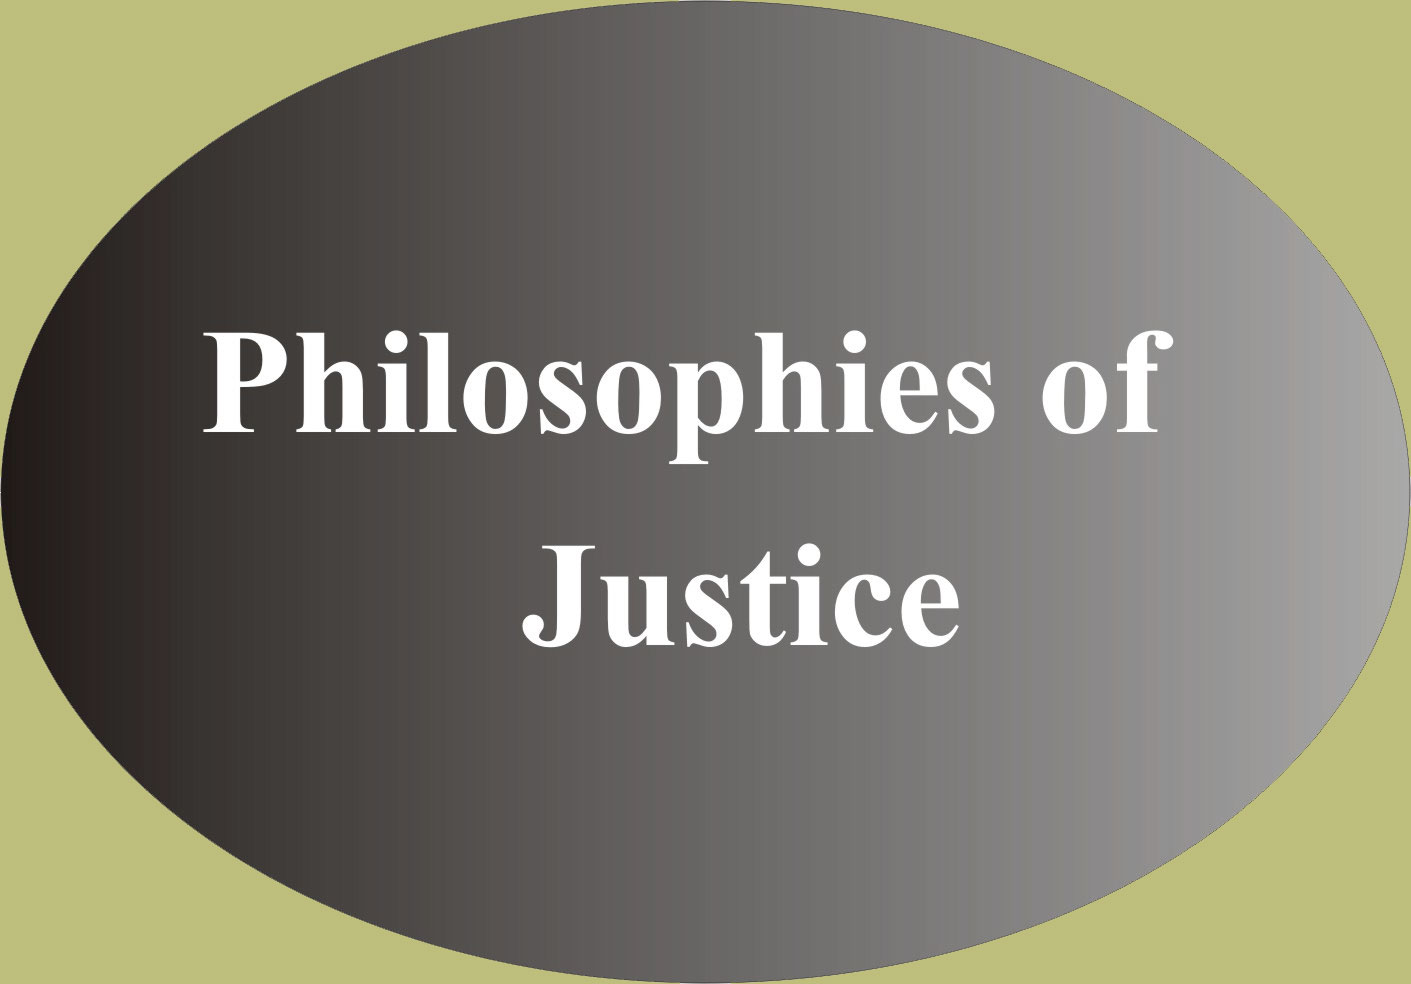 Philosophies of Justice